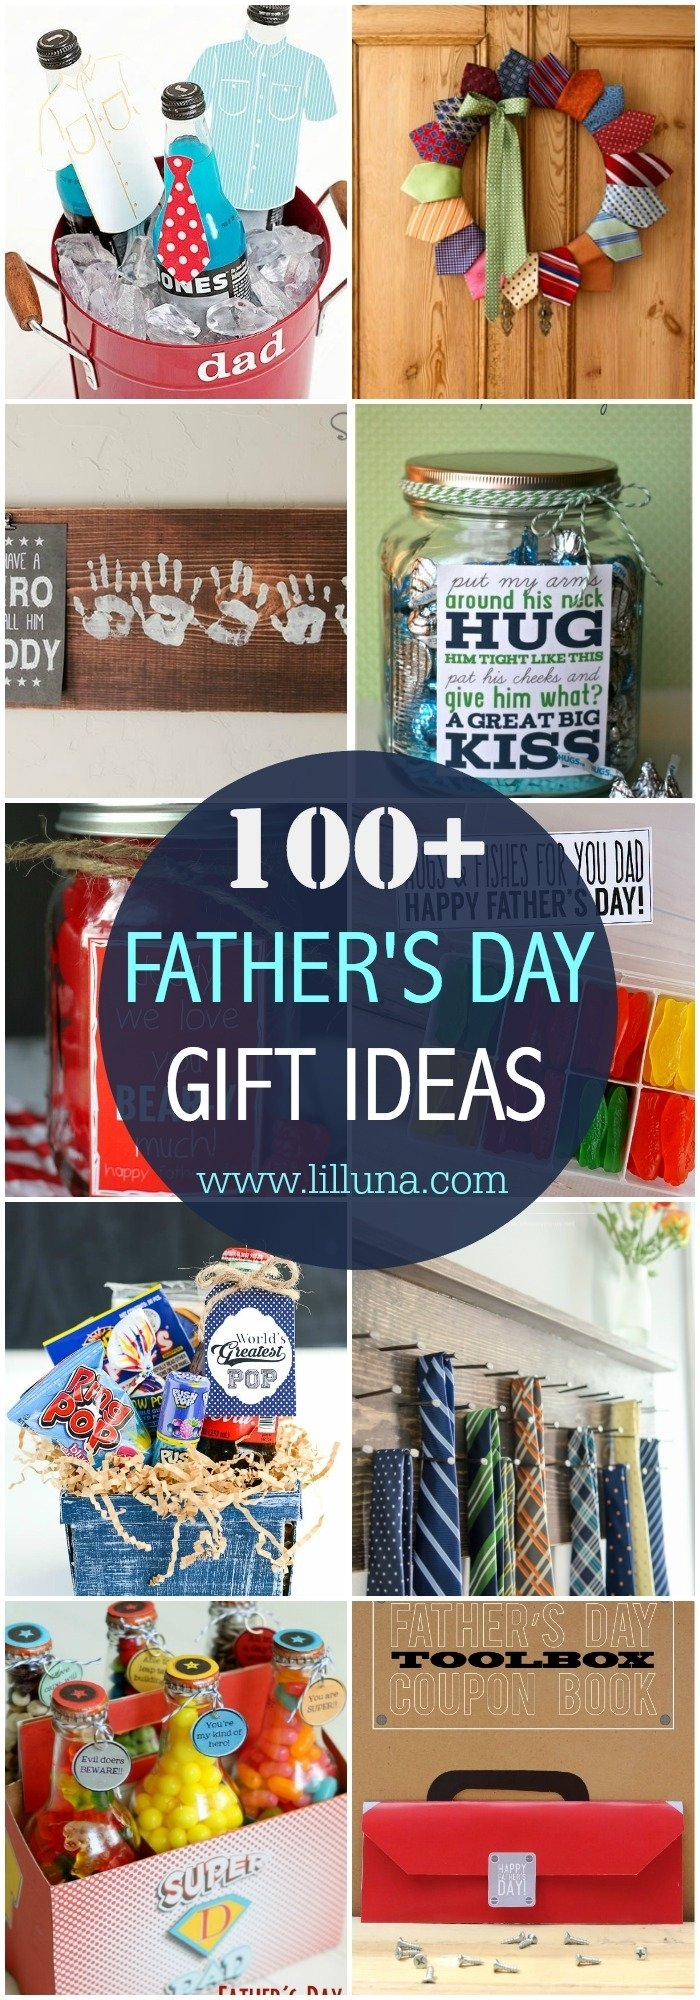 10 Gorgeous Good Fathers Day Gift Ideas fathers day gift ideas 1